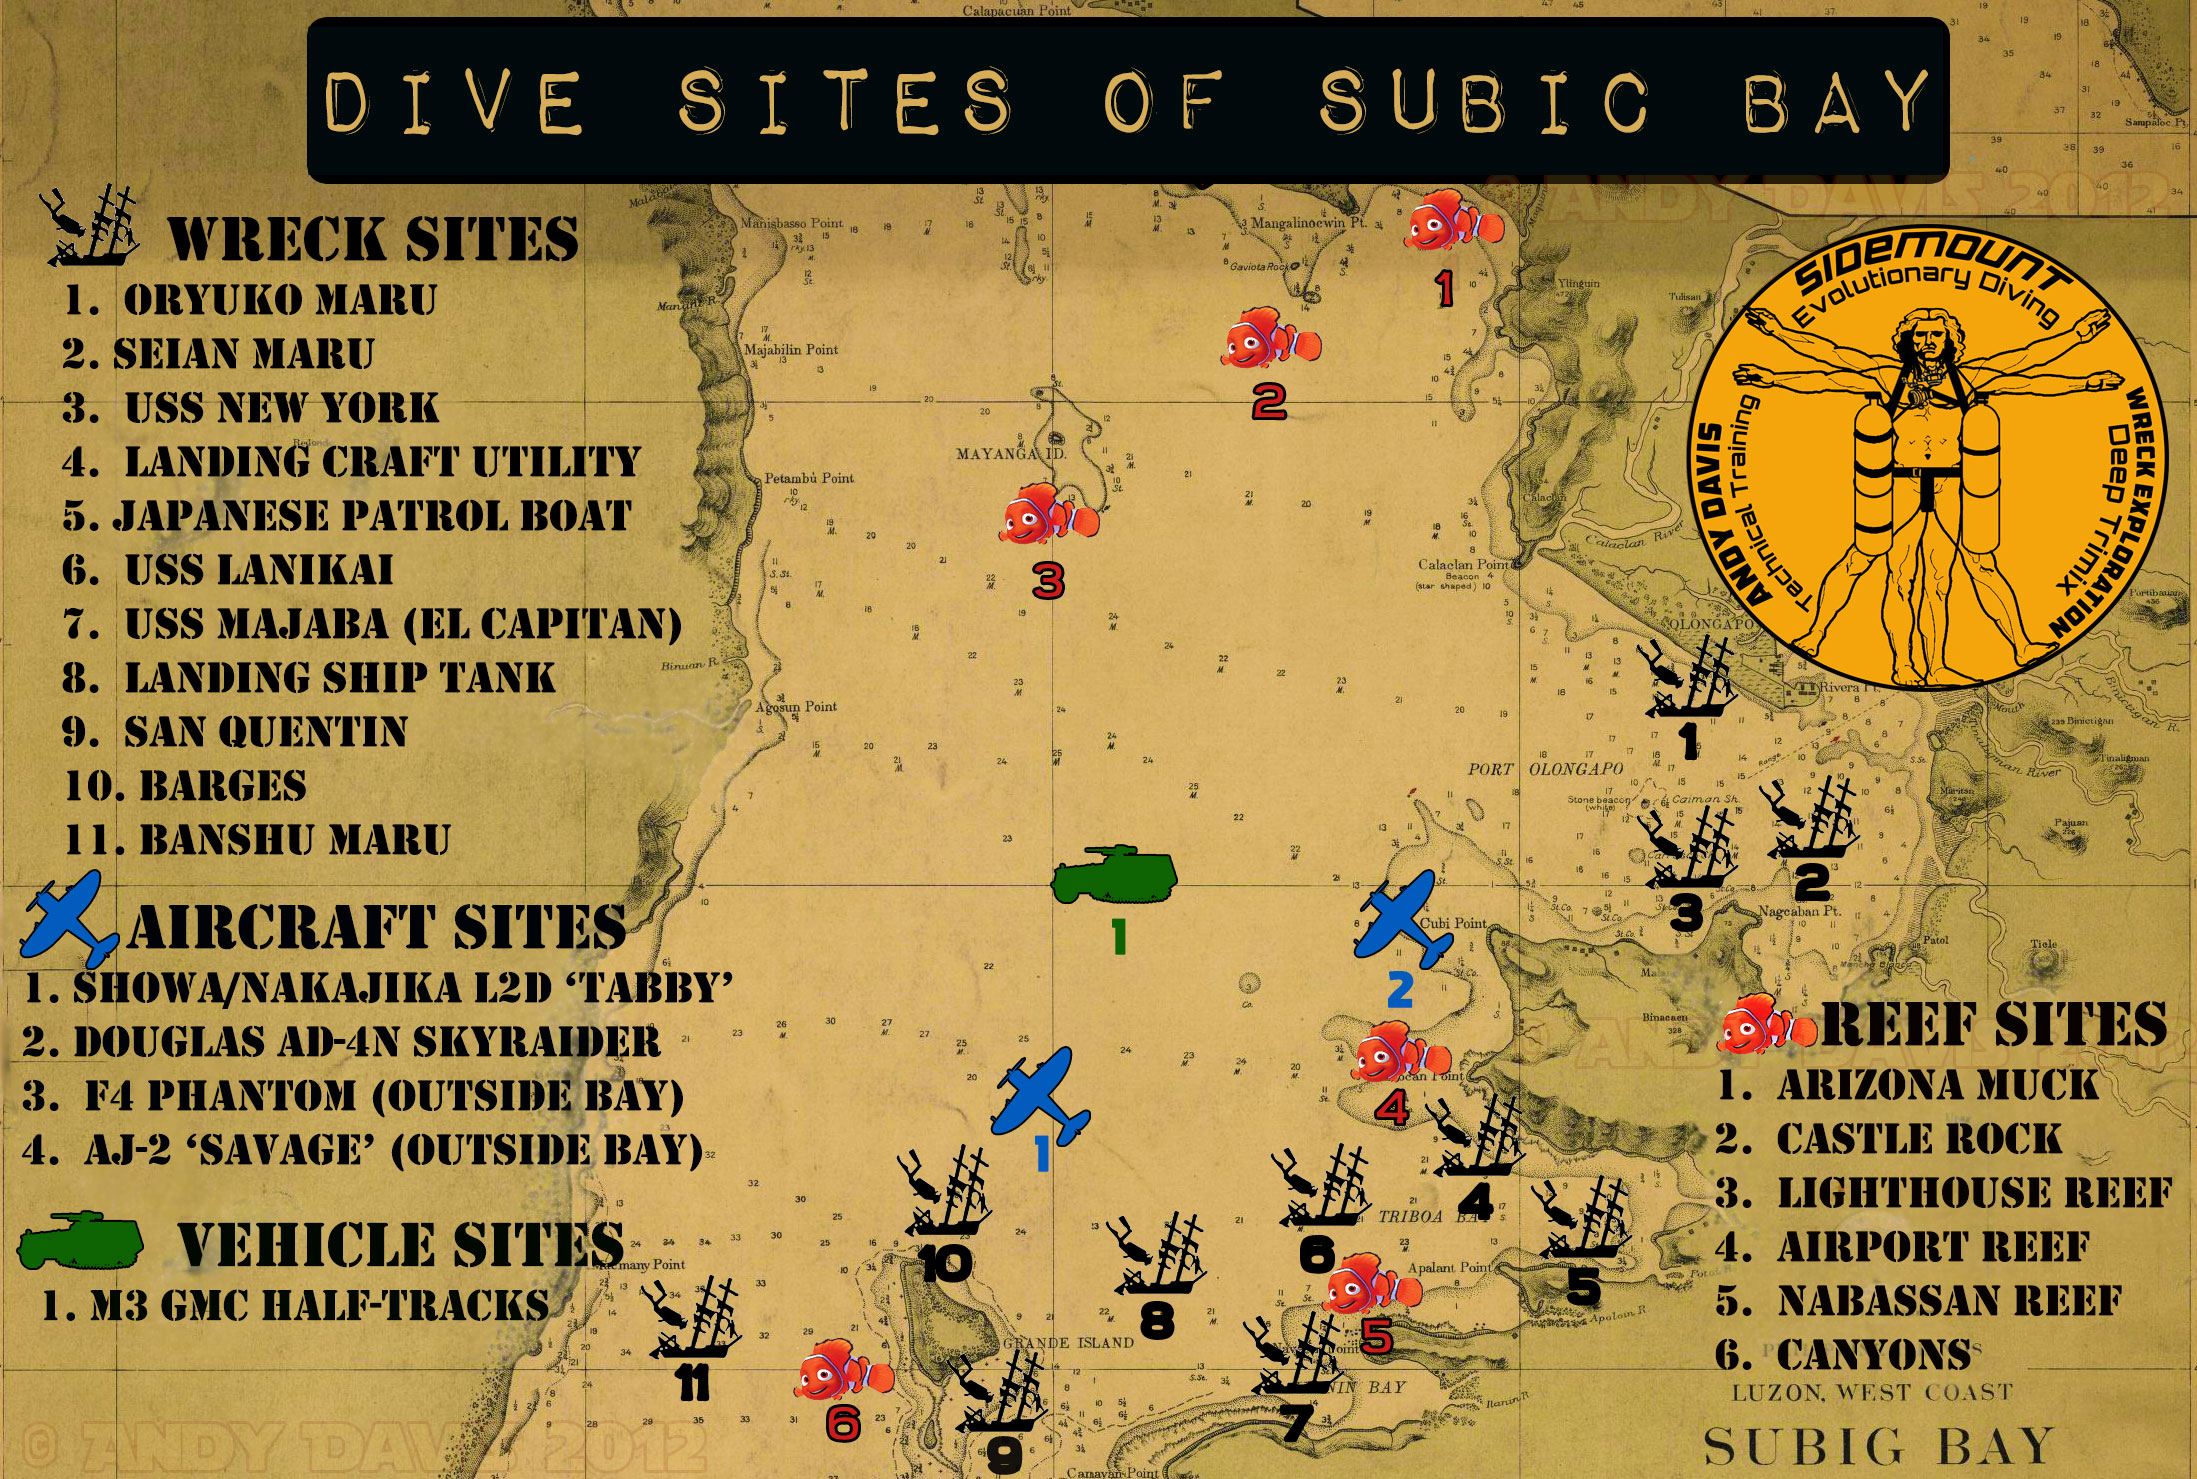 Subic Bay Dive Sites   Map and Descriptions   Wreck Diving on prehistoric maps, 17th century maps, groundwater maps, high quality maps, geoportal maps, pyramids ancient egypt maps, stone maps, shipping maps, pathfinder rpg maps, role playing maps, social studies maps, treasure maps, disease maps, ham radio maps, teaching maps, fictional maps, fill in the blank maps, unusual maps, minecraft mine maps,